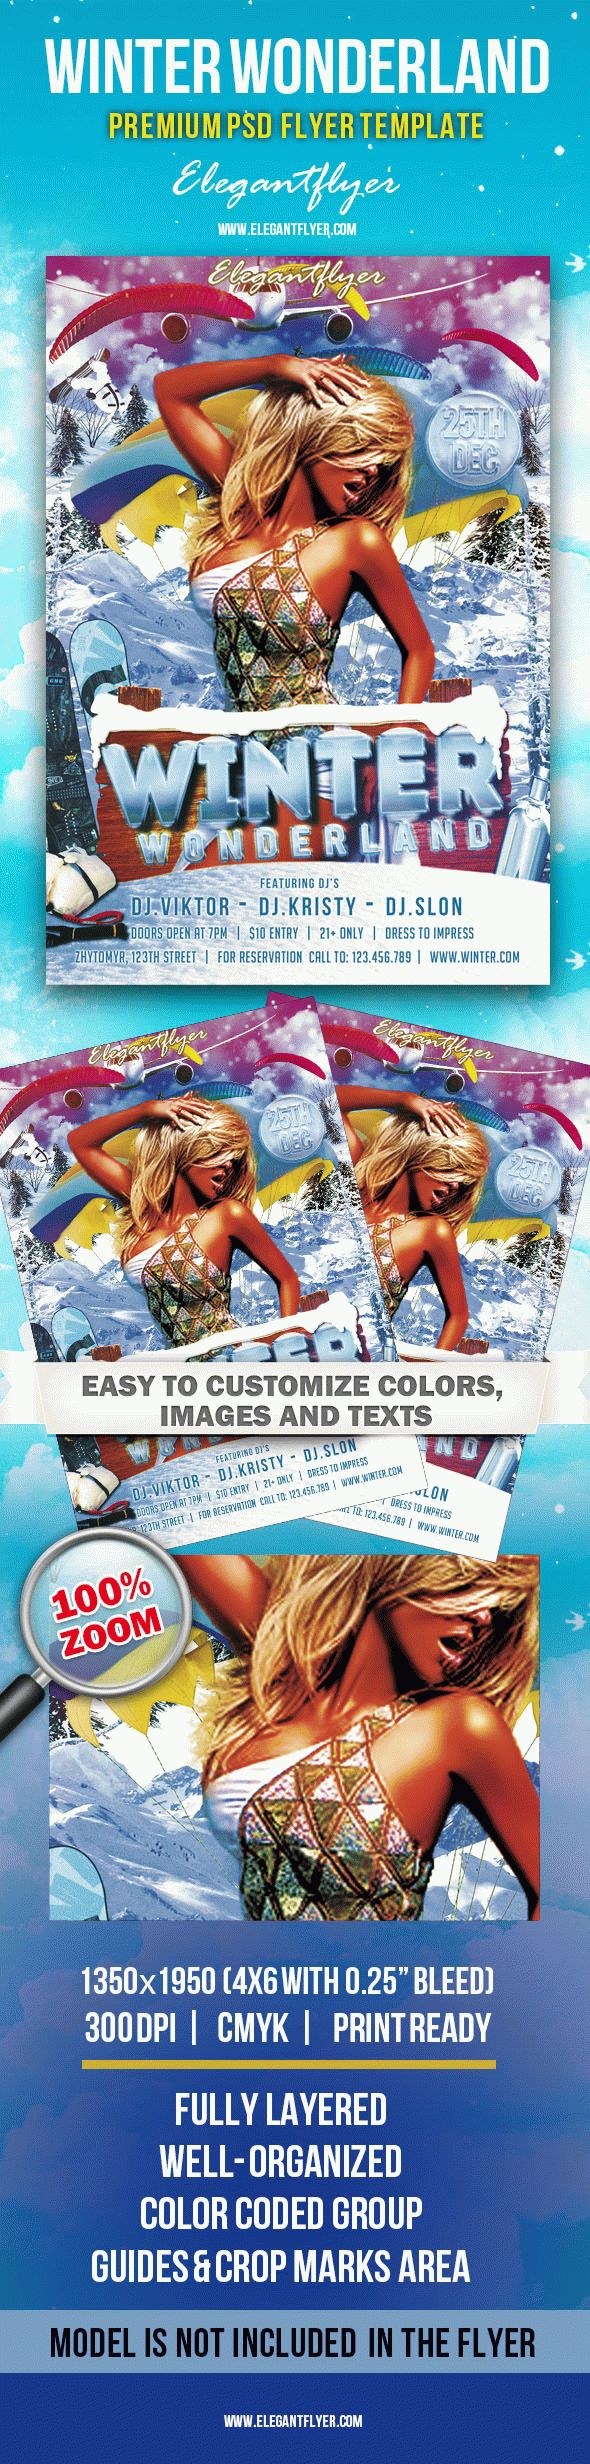 Winter Wonderland – Premium Club flyer PSD Template